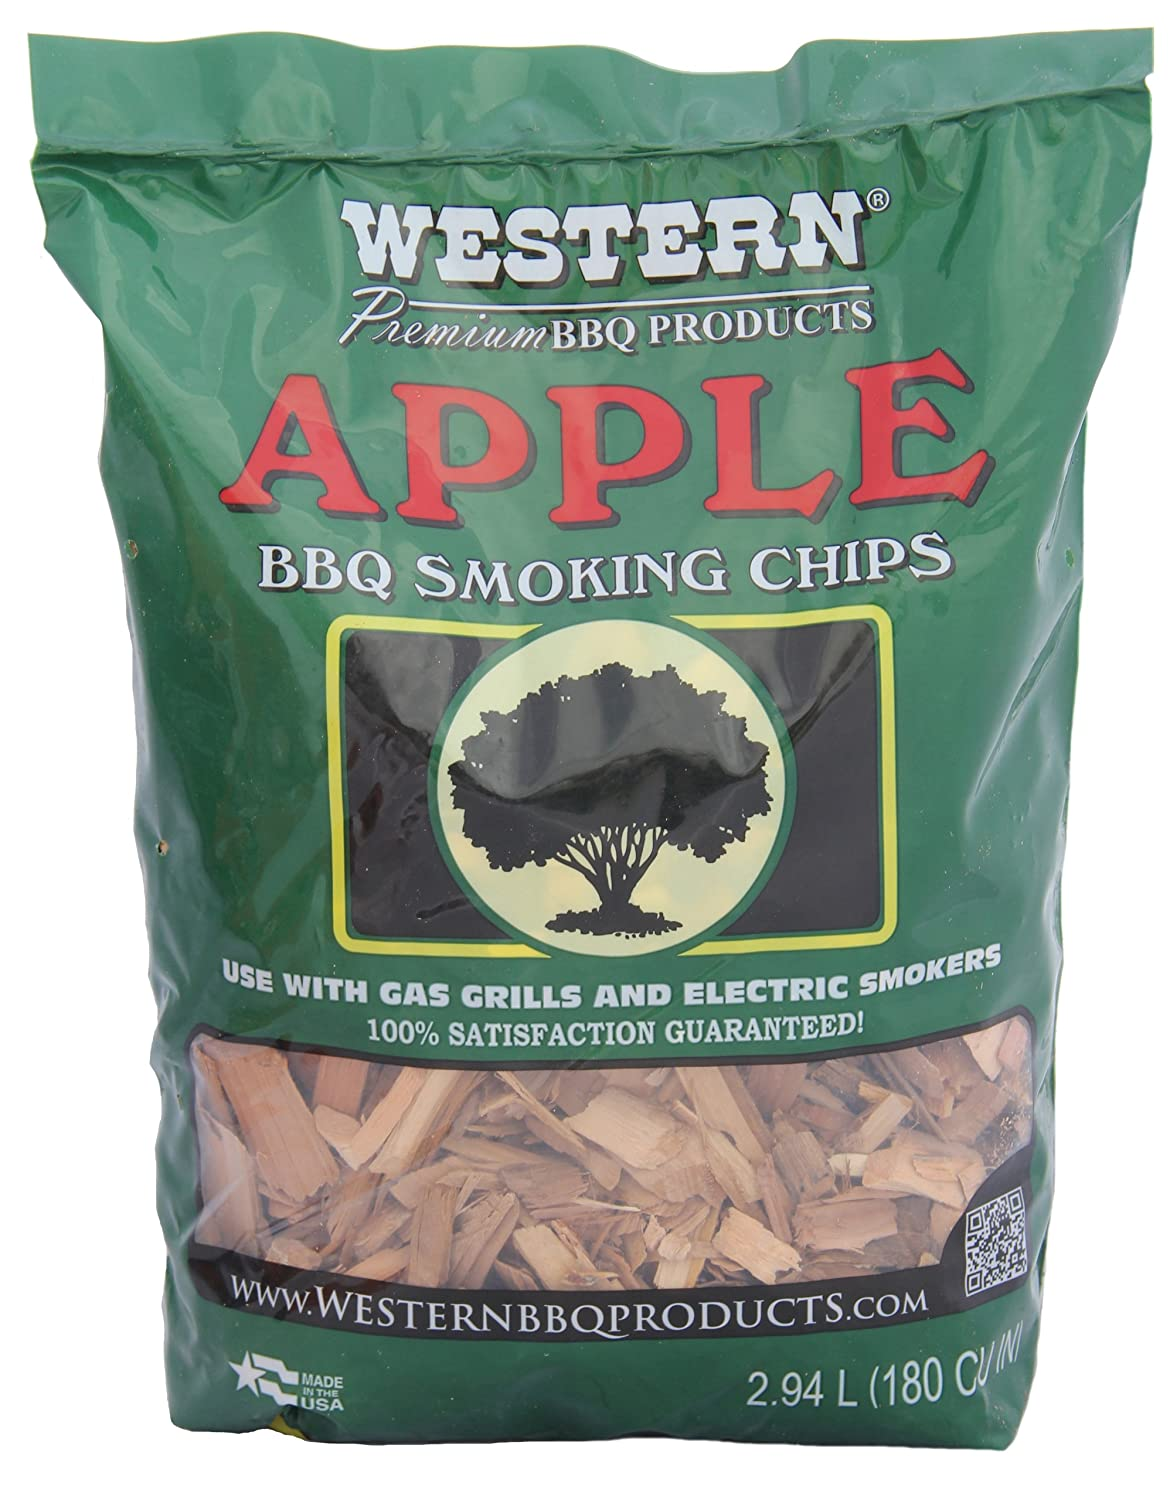 Western apple bbq smoking chips wood smoker grilling